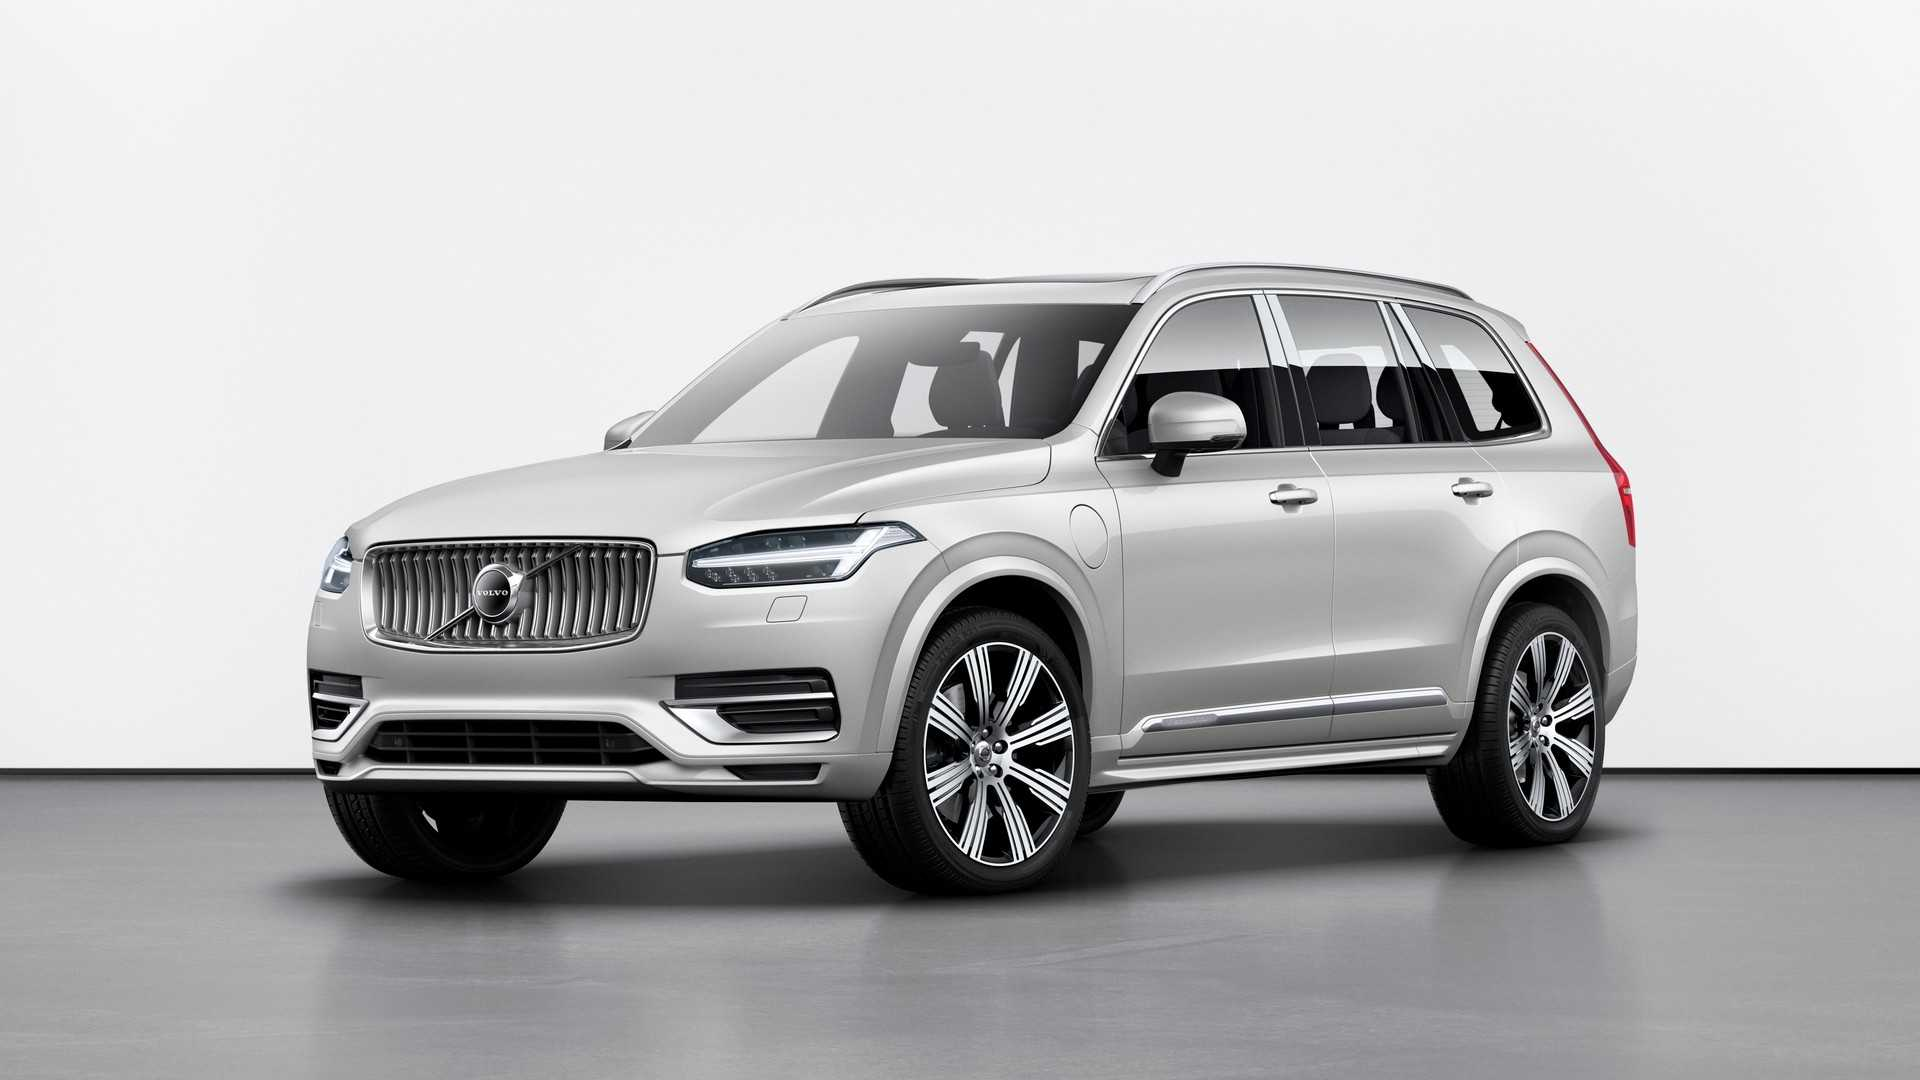 19 Best Review Difference Between 2019 And 2020 Volvo Xc90 Wallpaper by Difference Between 2019 And 2020 Volvo Xc90